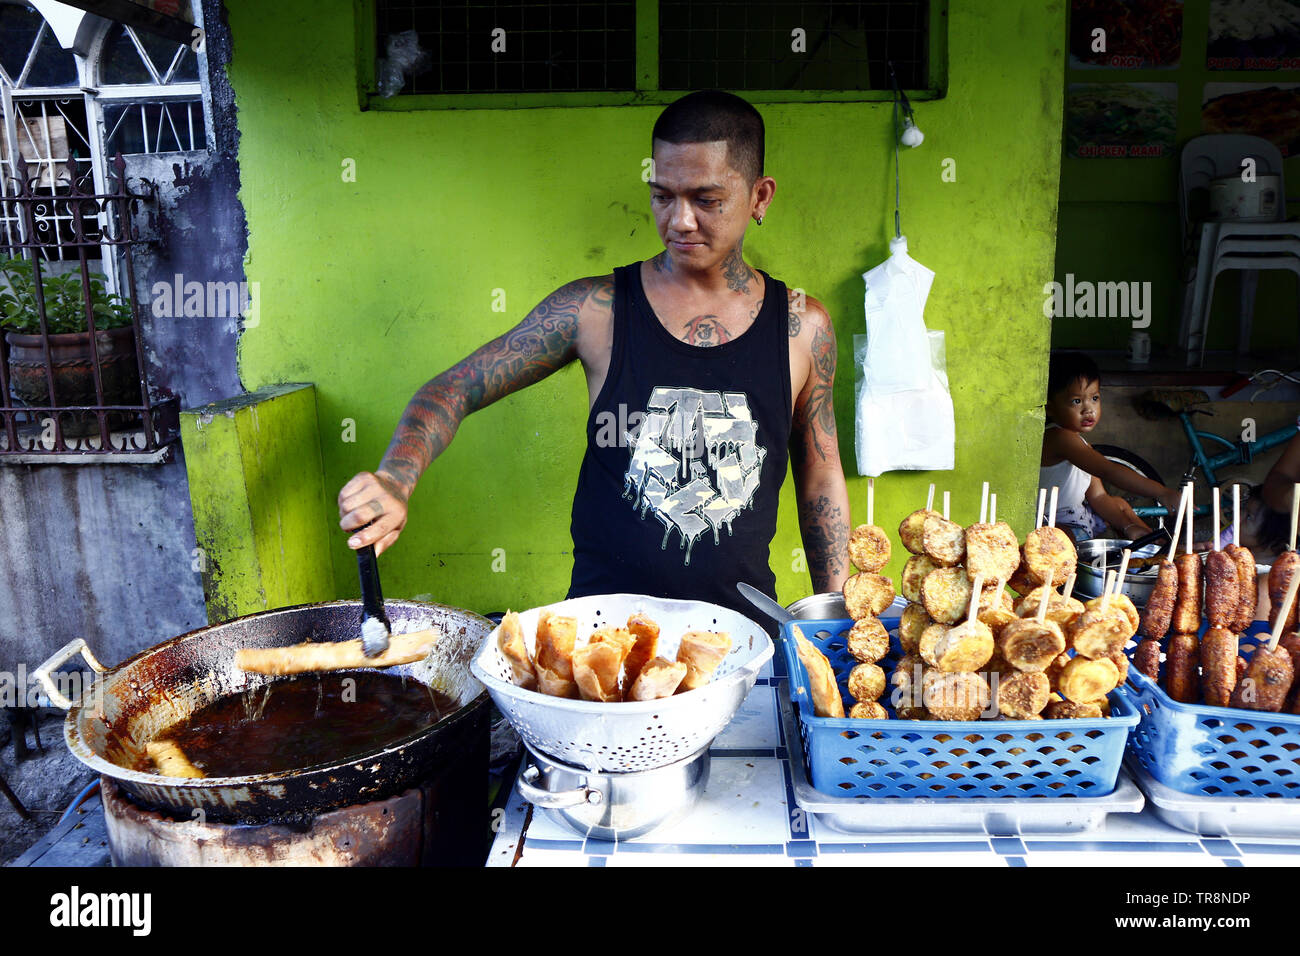 ANTIPOLO CITY, PHILIPPINES – MAY 30, 2019: A street vendor cooks assorted sweet snack items in his makeshift store on a sidewalk along a street. - Stock Image